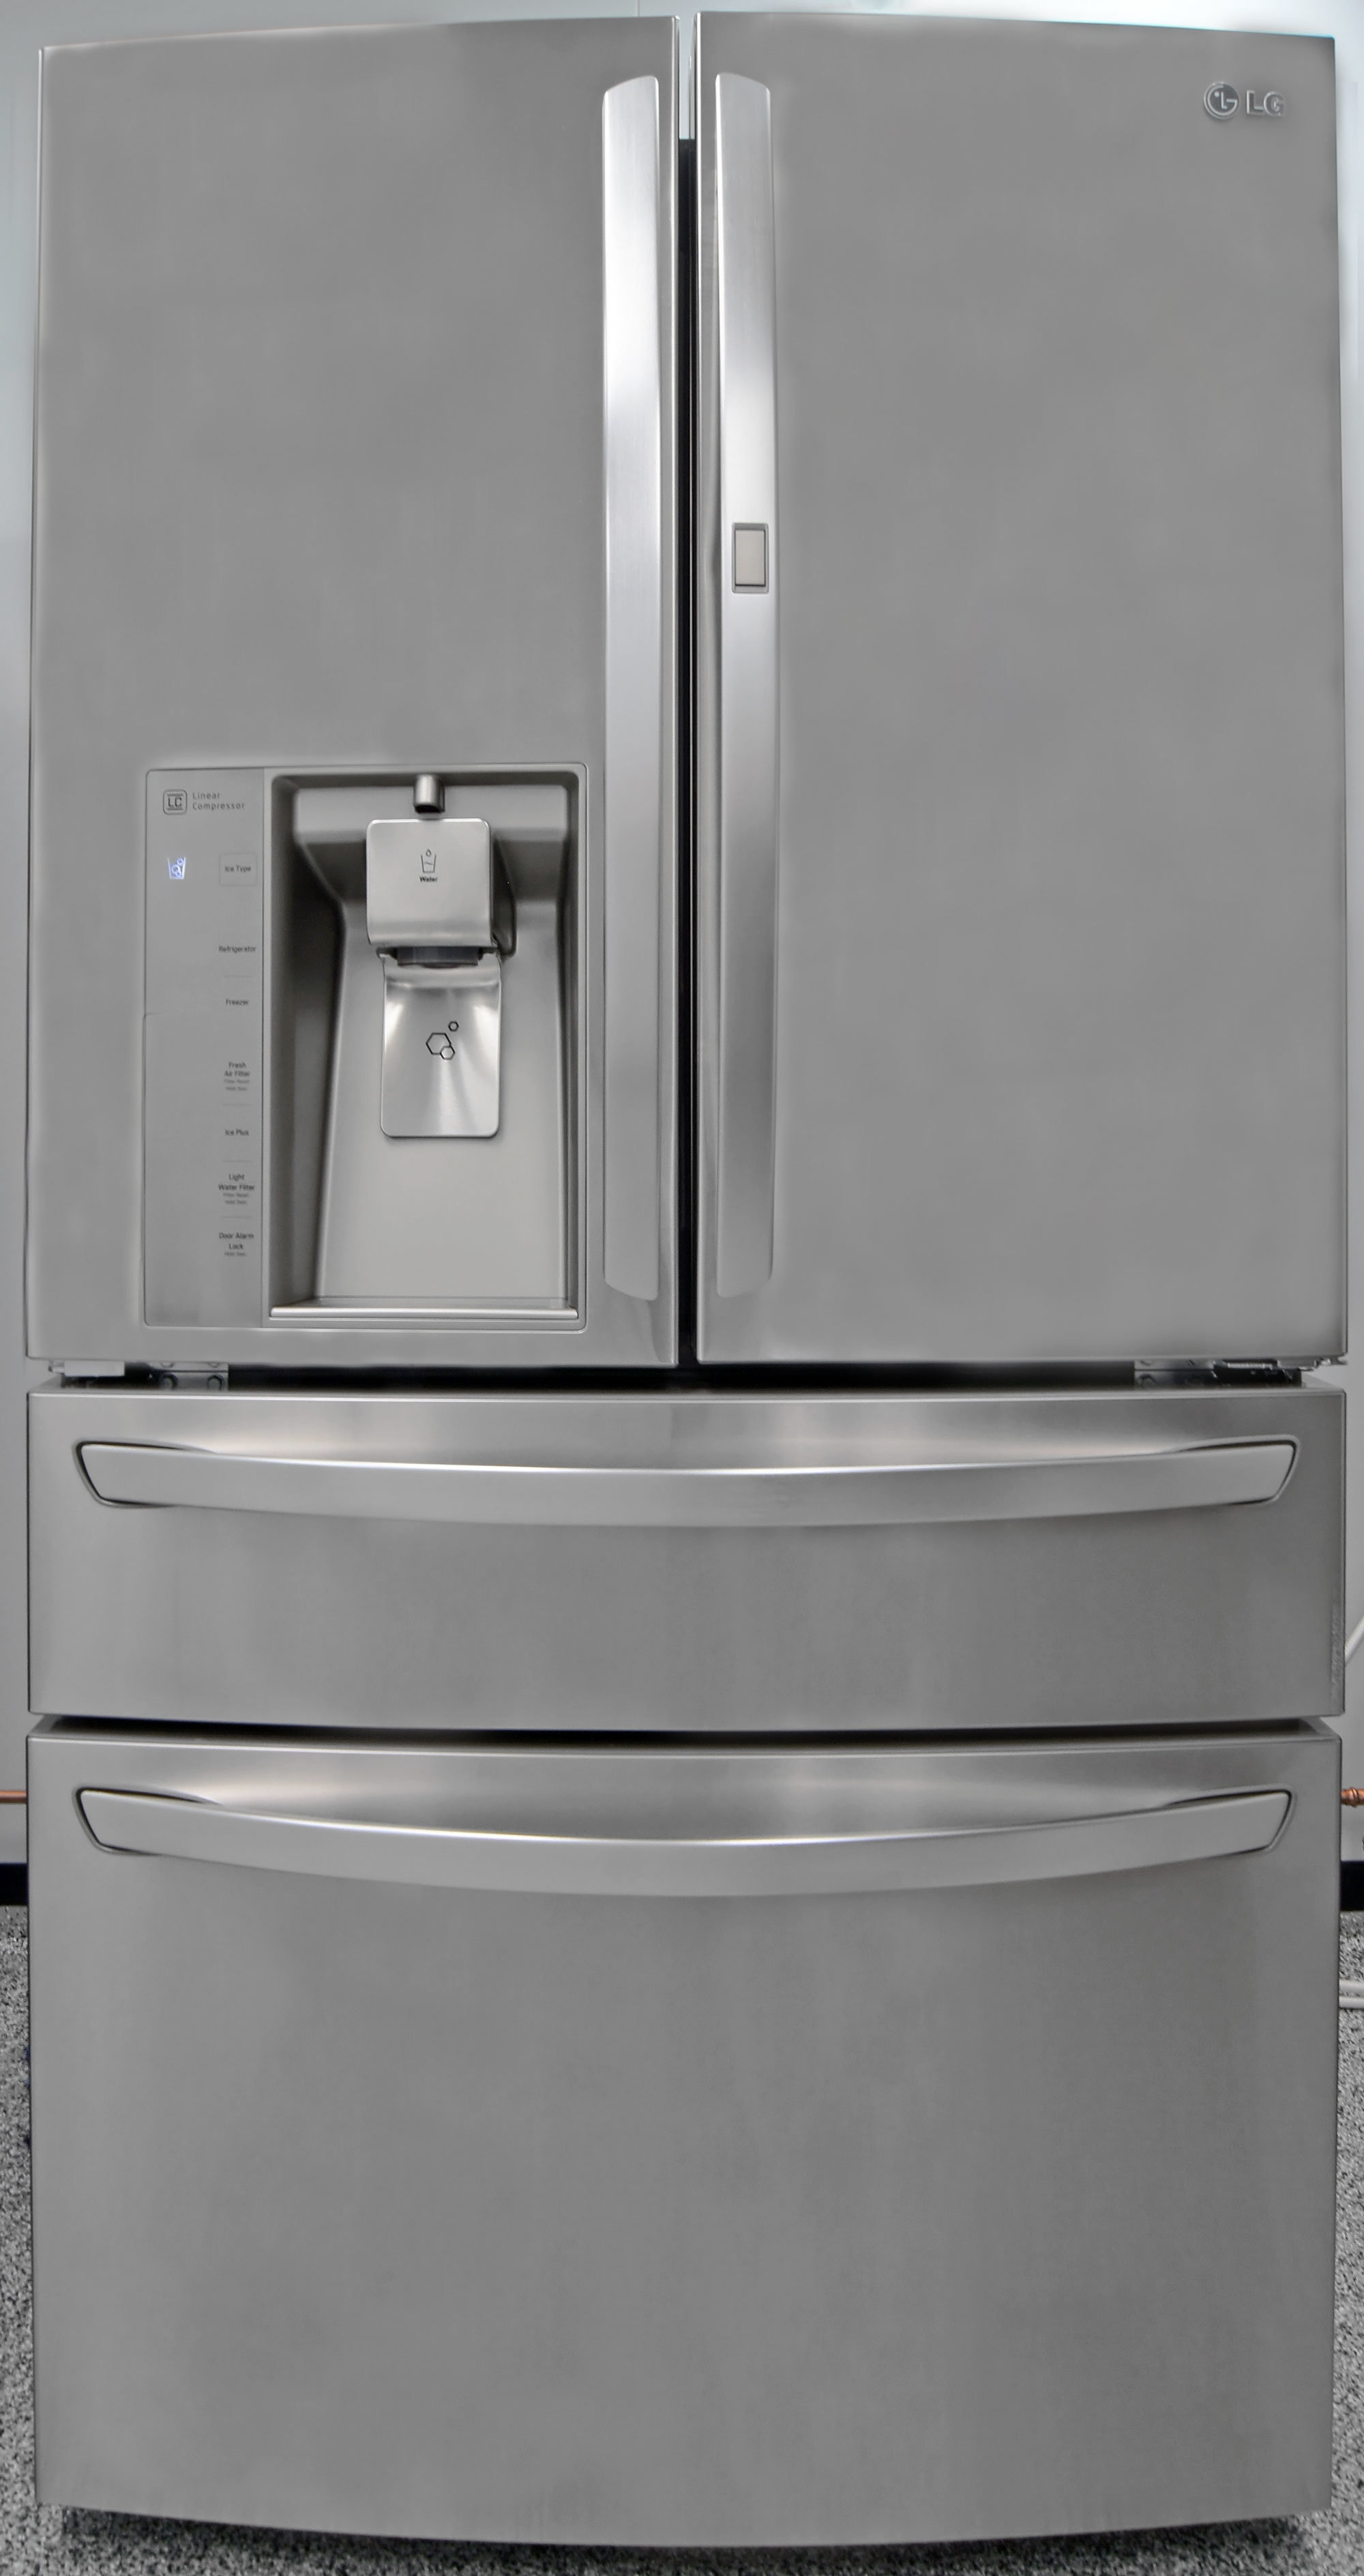 From the outside, the LG LMXS30776S looks like a fairly standard high-end fridge.